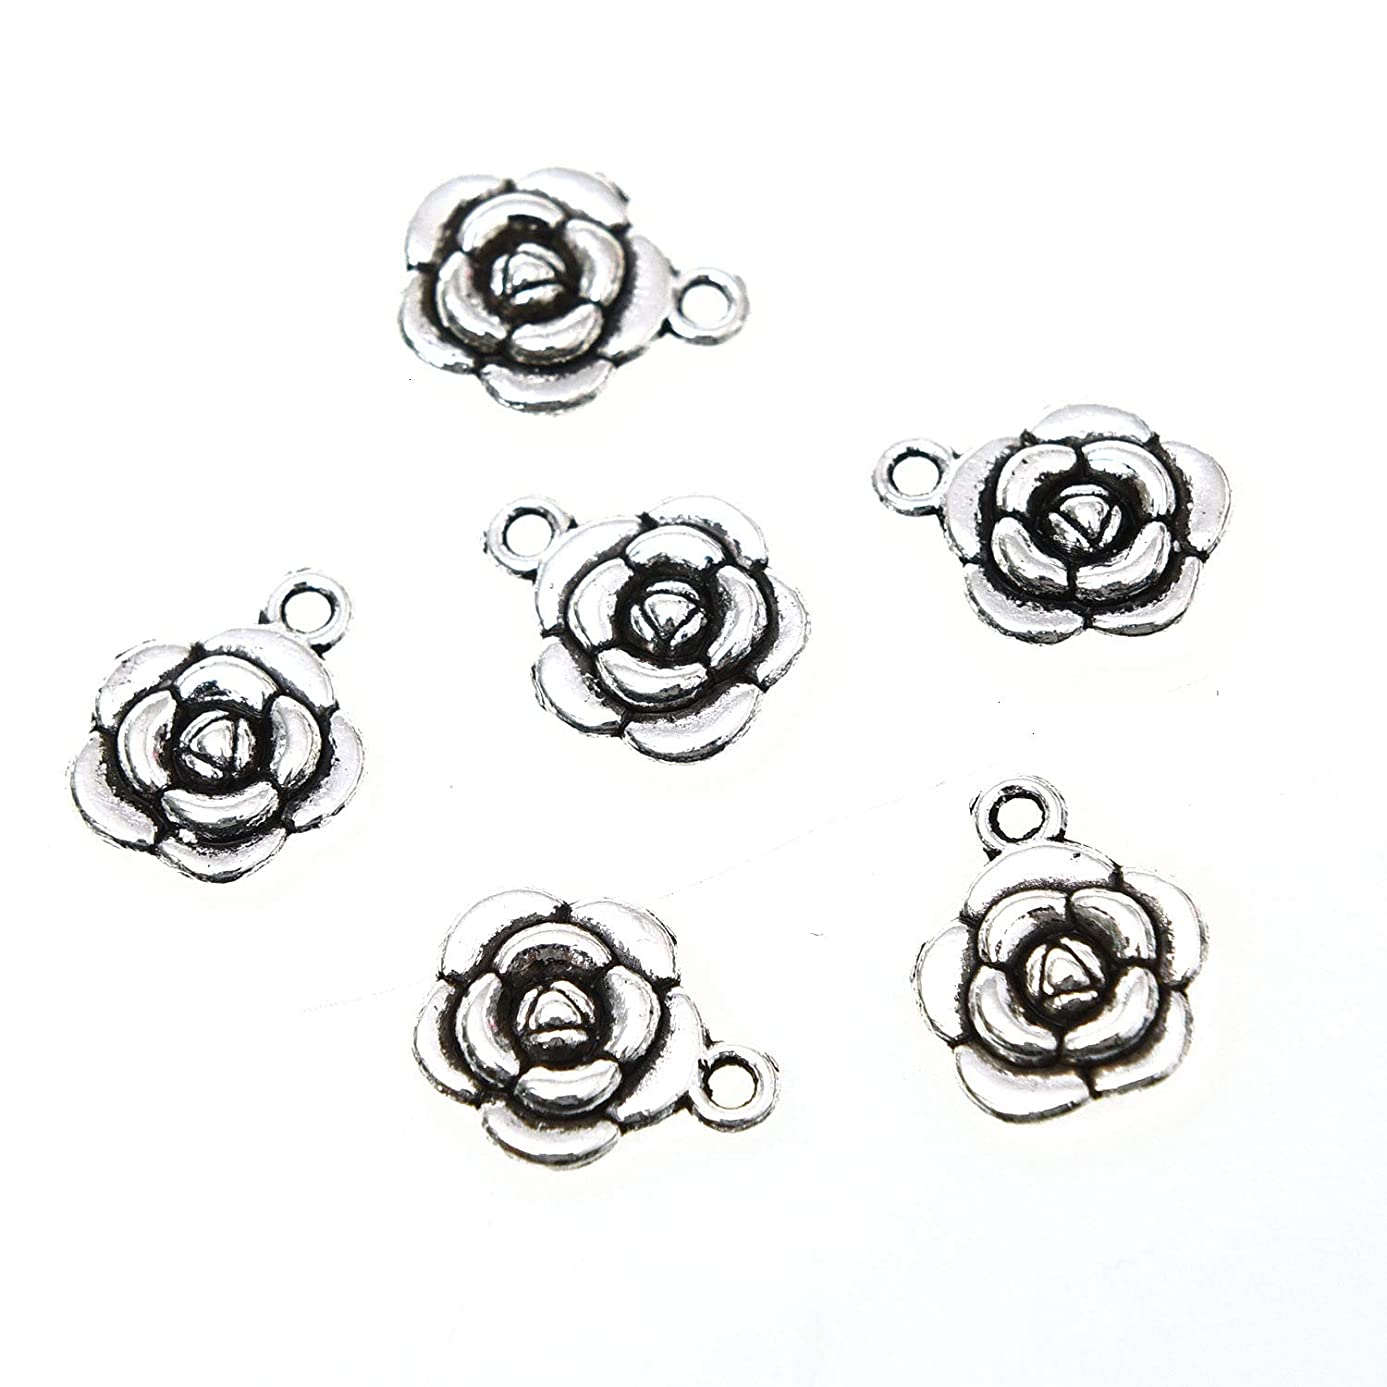 Monrocco 80pcs Antique Silver Alloy Flower Charms Pendant Jewelry Findings for DIY Jewelry Making Necklace Bracelet